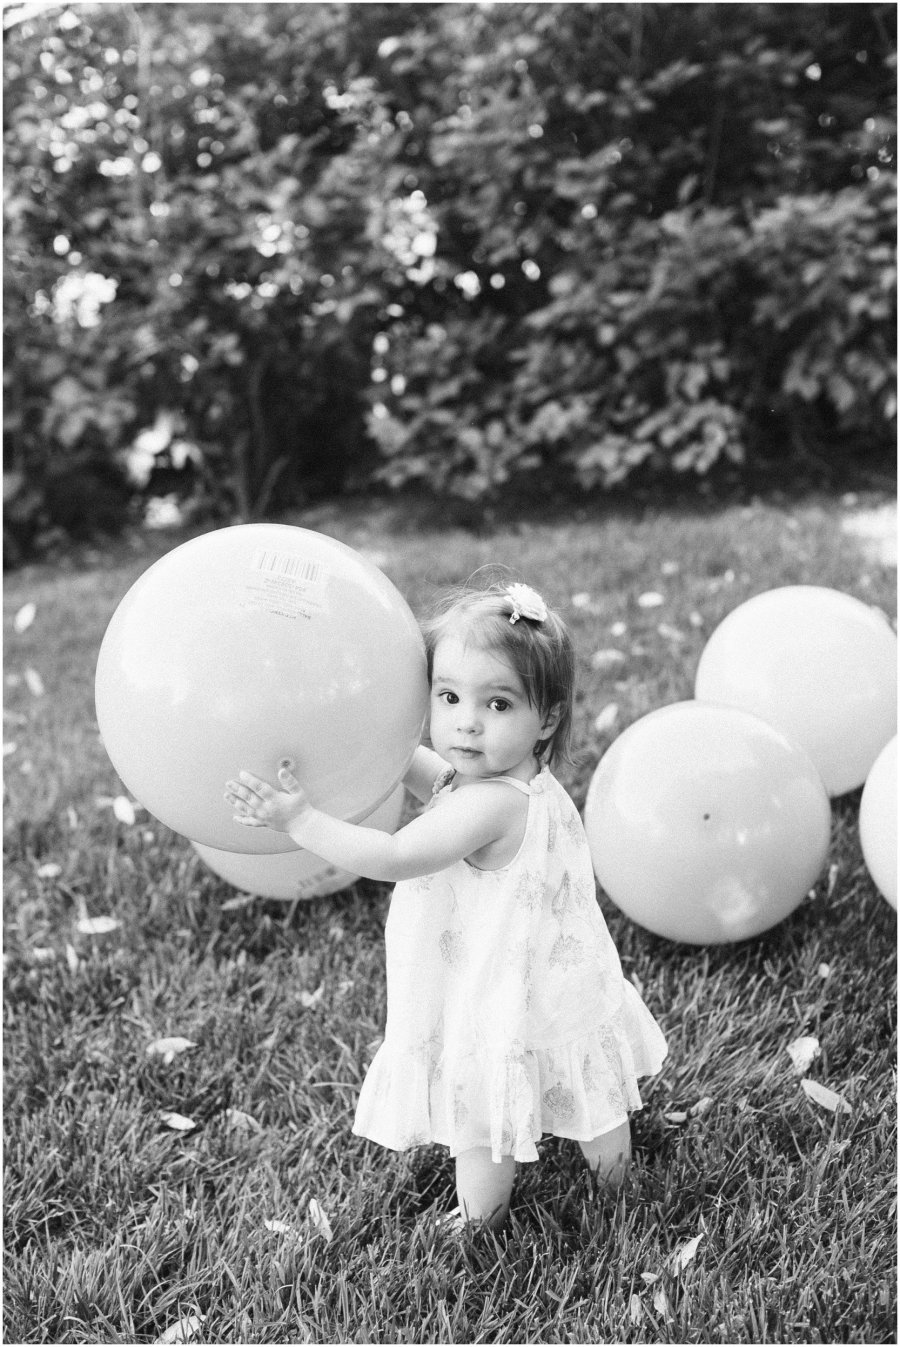 Barnes Family session by Alea Lovely